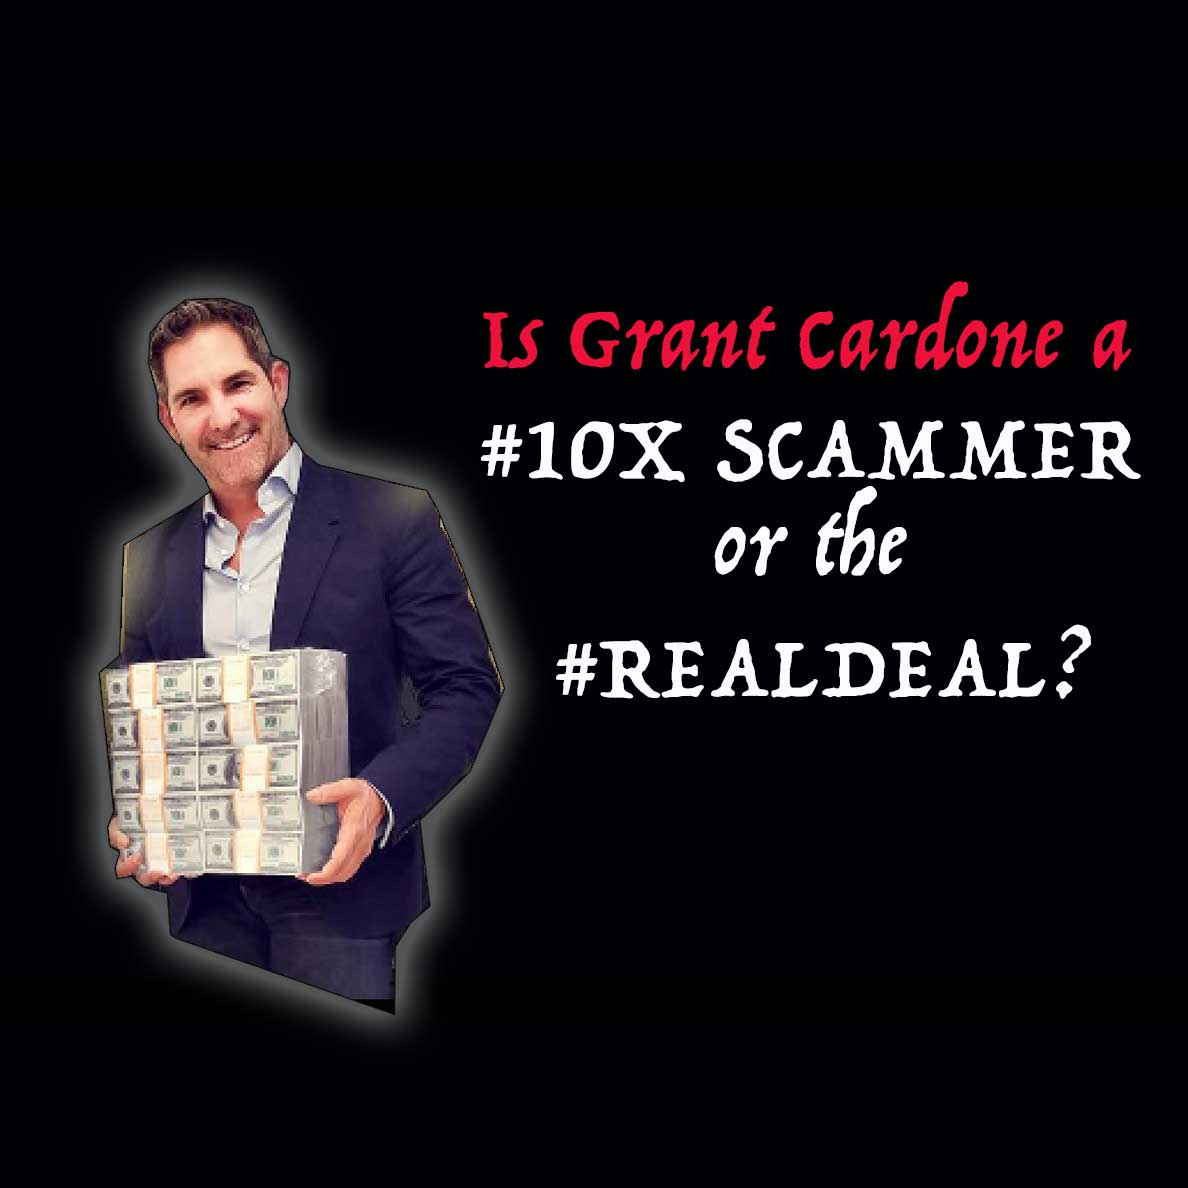 Is Grant Cardone a #10X scammer or #realdeal?